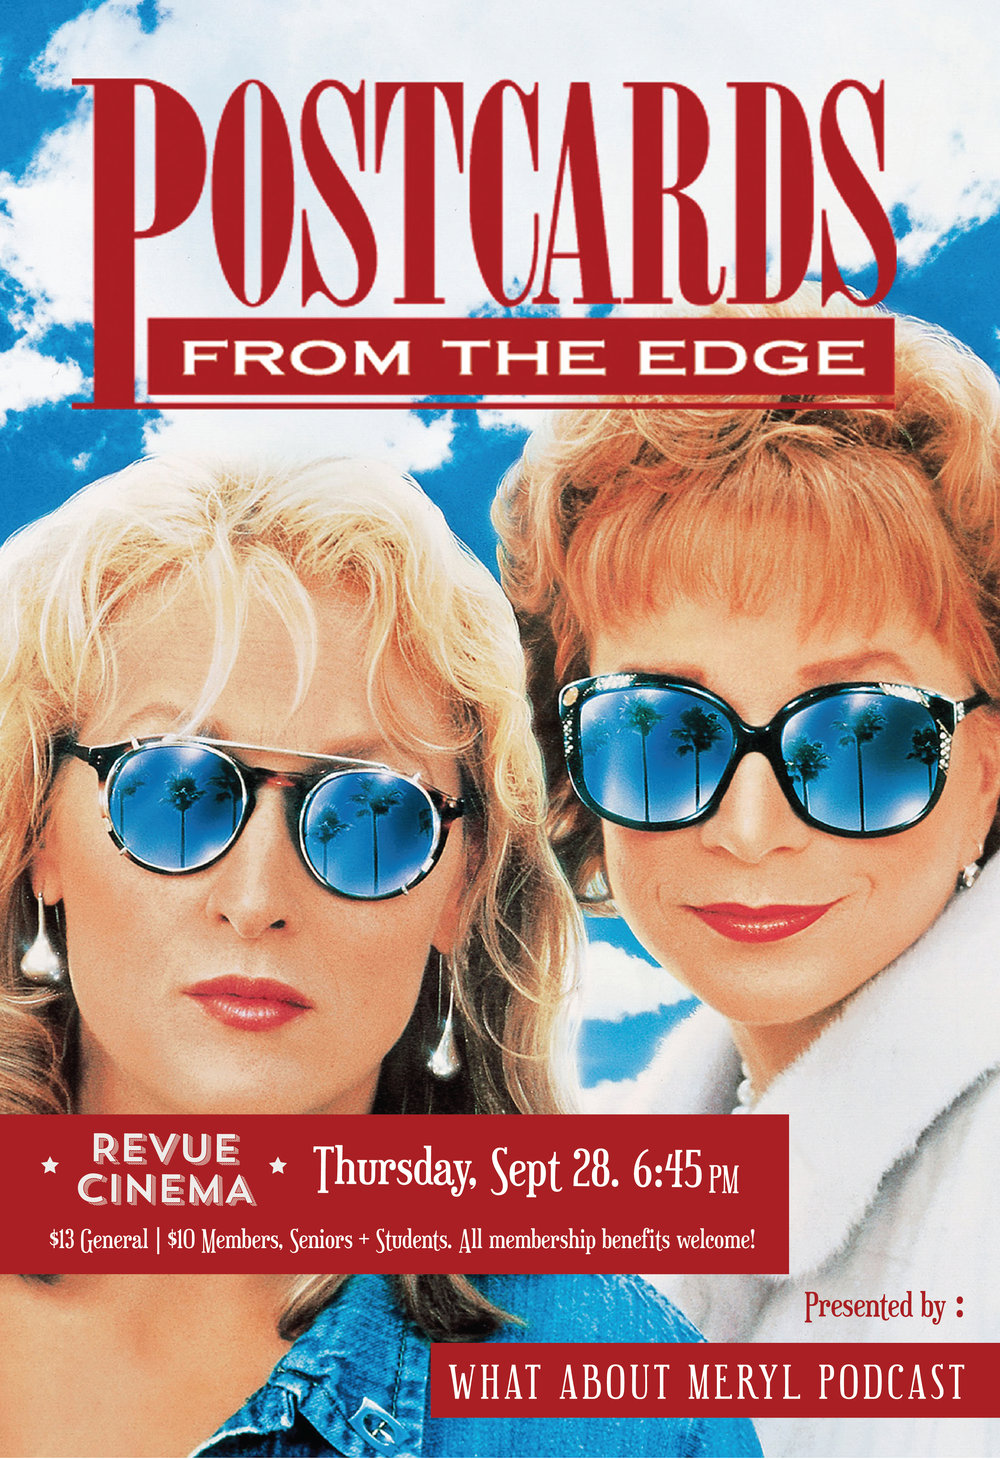 POSTCARDS FROM THE EDGE   September 28, 2017, Revue Cinema   Presented by What About Meryl? and sponsored by Hollywood Suite